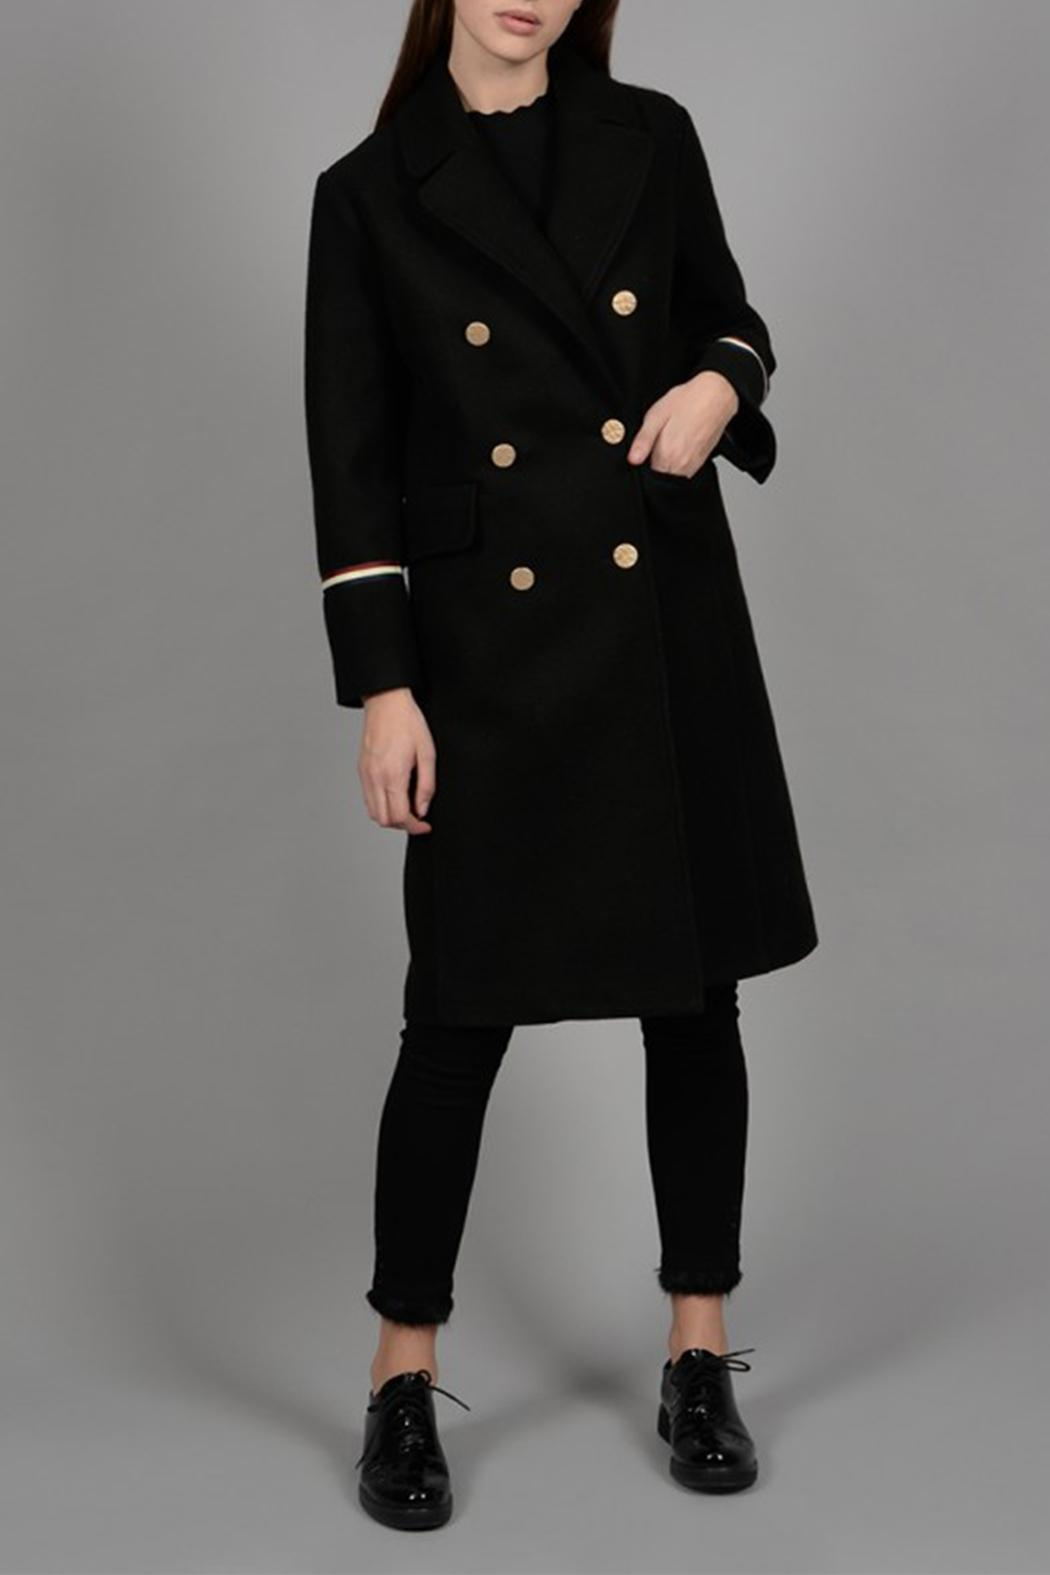 Molly Bracken Gucci Inspired Coat - Front Full Image